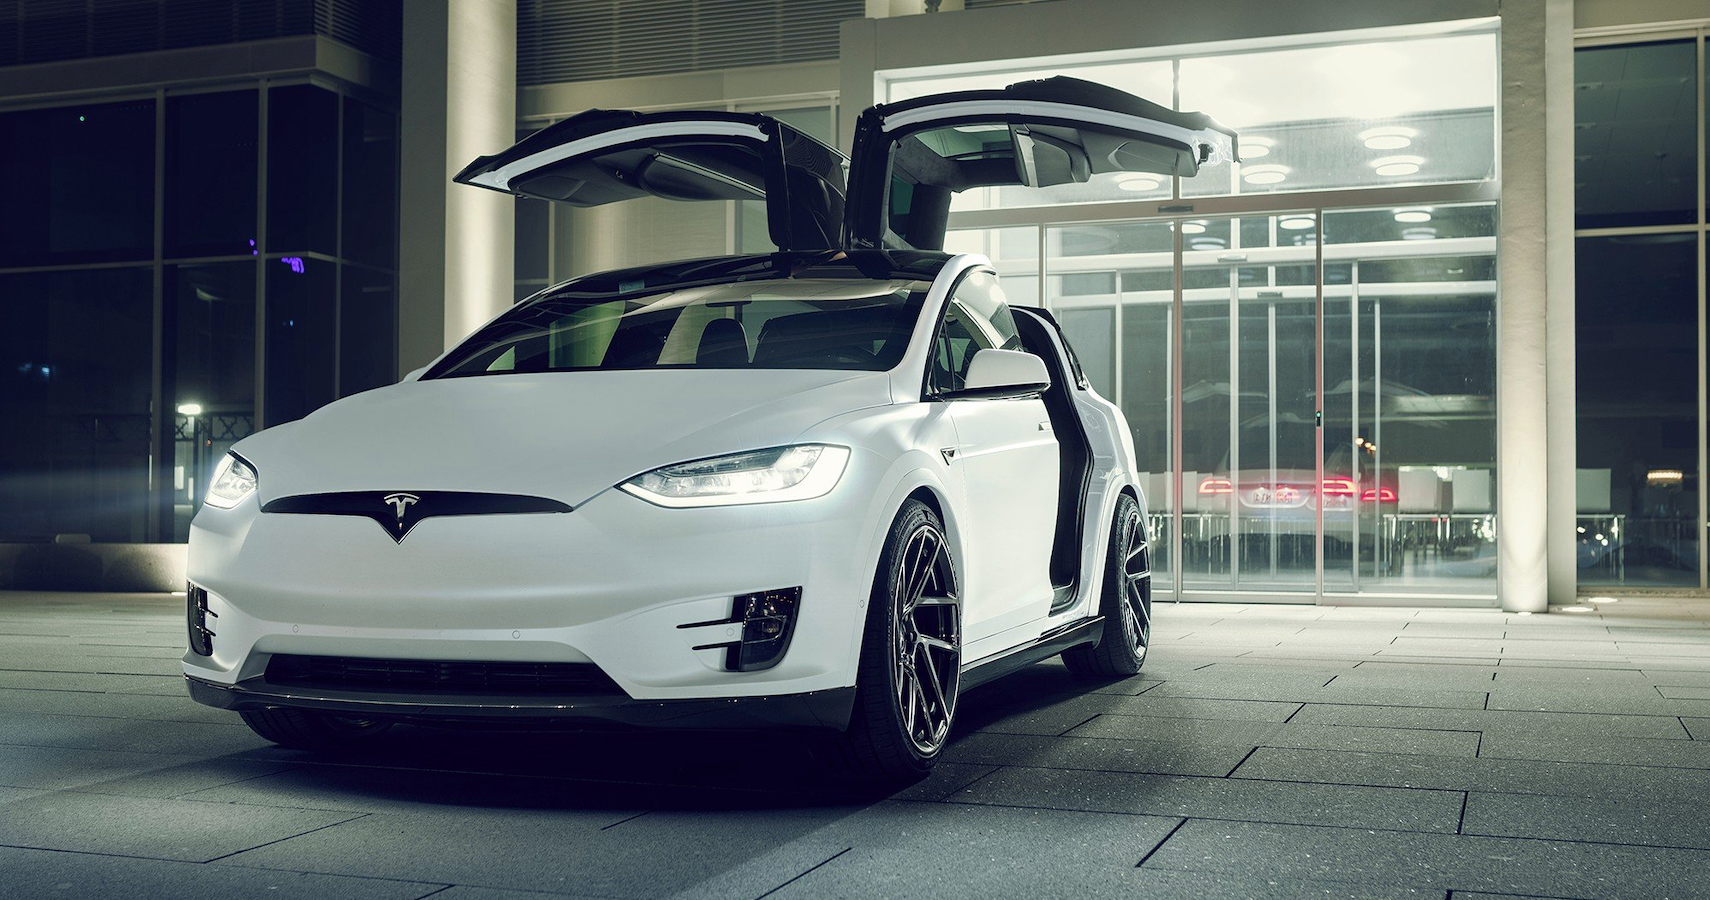 Tesla Model X By Novitec Has Hi-Tech King-Sized Position-Specific Wheels